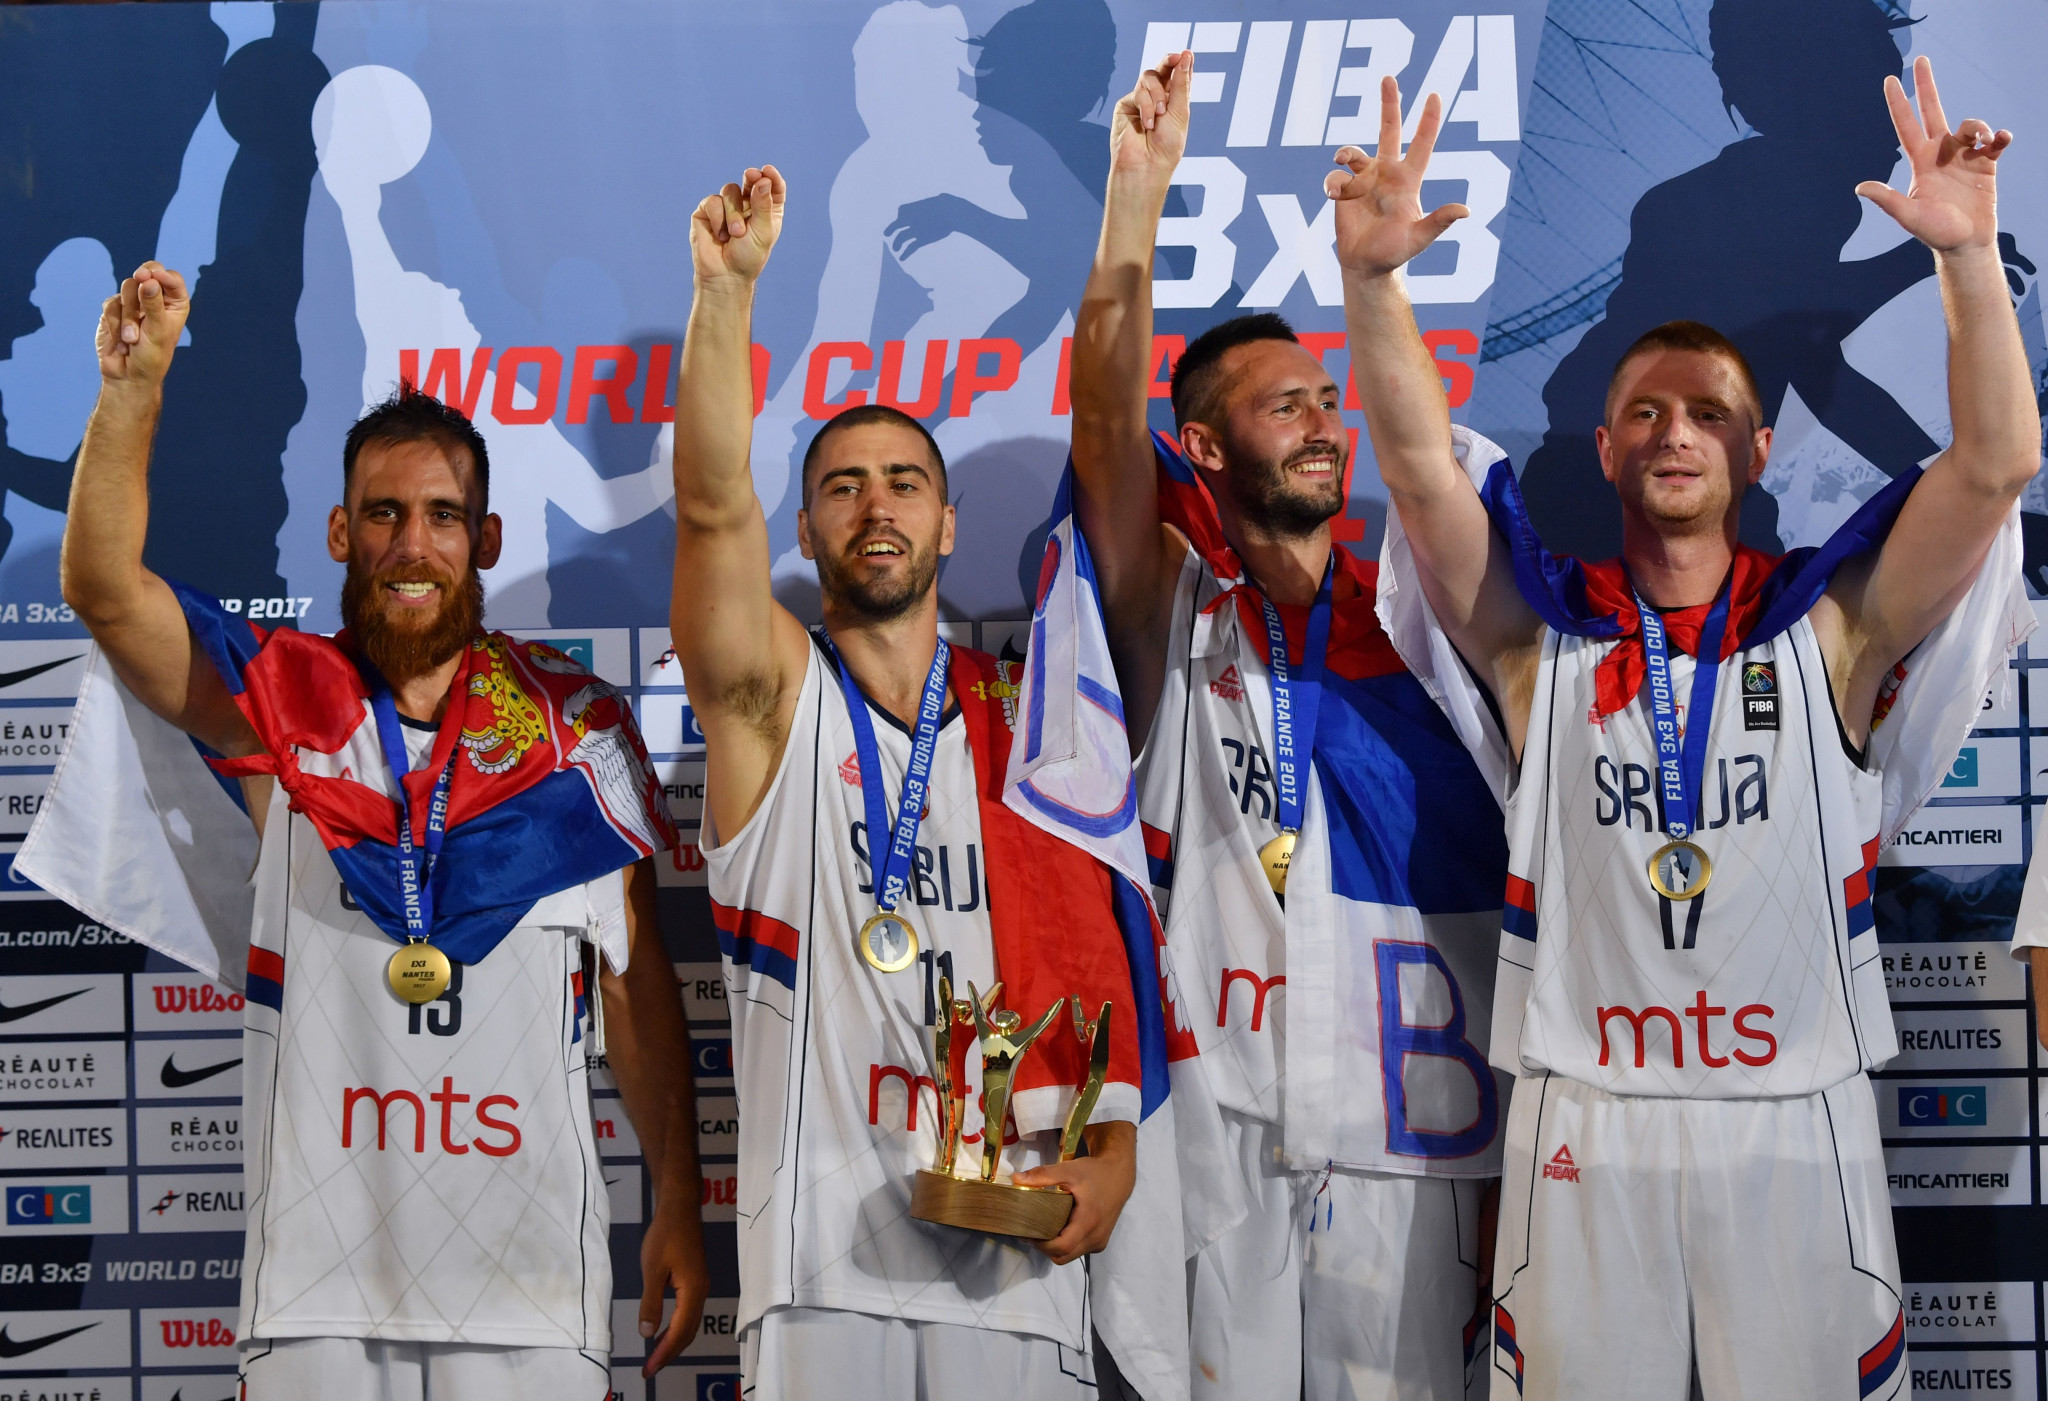 Hosts France seeking to defend women's title at FIBA 3x3 Europe Cup